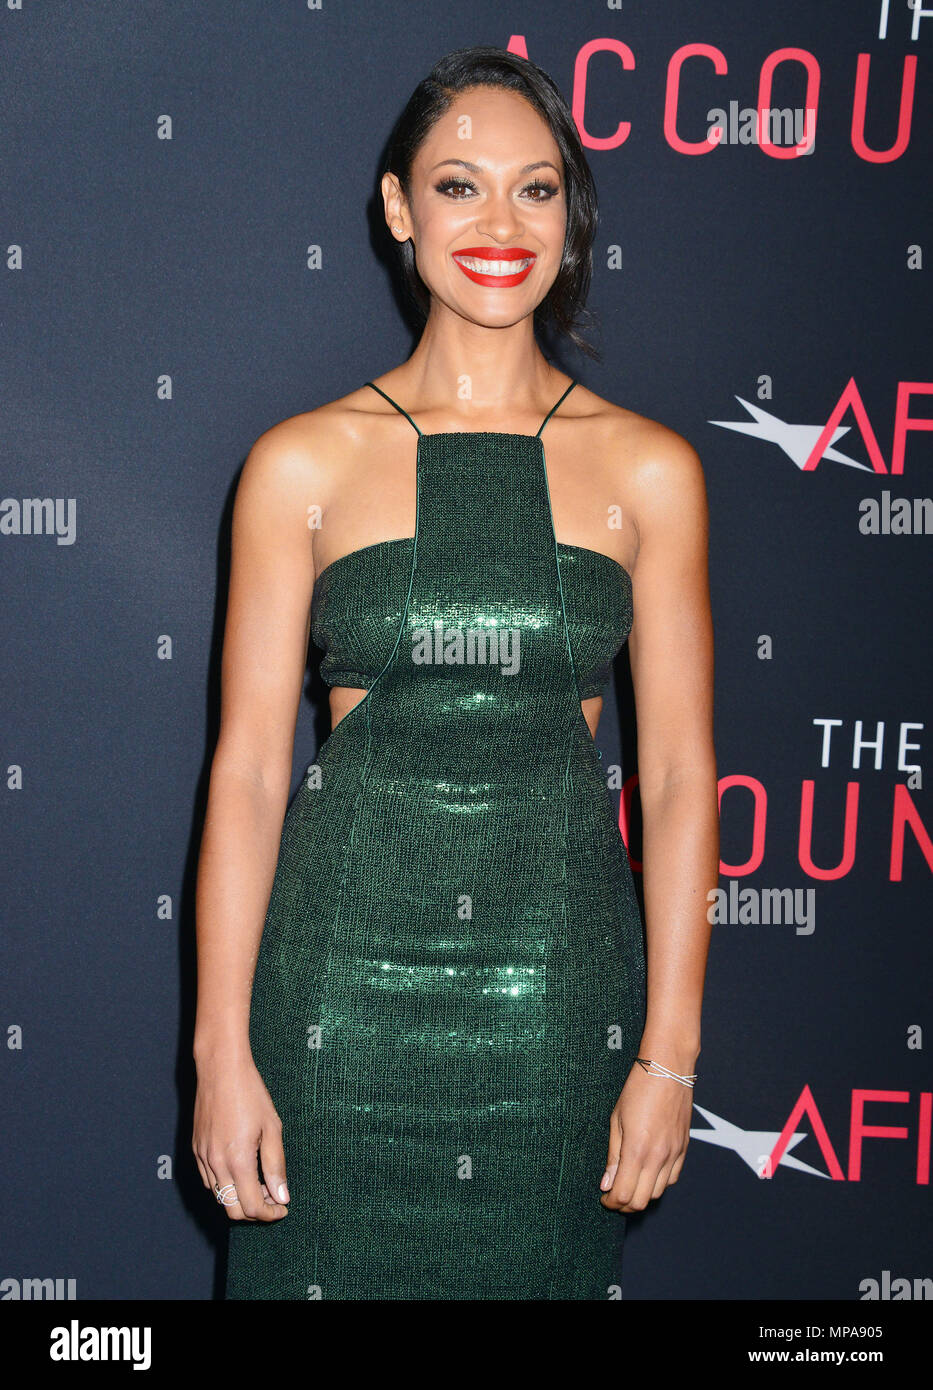 Cynthia Addai-Robinson 035 at The Accountant Premiere at the TCL Chinese Theatre in Los Angeles. October 10, 2016.Cynthia Addai-Robinson 035 ------------- Red Carpet Event, Vertical, USA, Film Industry, Celebrities,  Photography, Bestof, Arts Culture and Entertainment, Topix Celebrities fashion /  Vertical, Best of, Event in Hollywood Life - California,  Red Carpet and backstage, USA, Film Industry, Celebrities,  movie celebrities, TV celebrities, Music celebrities, Photography, Bestof, Arts Culture and Entertainment,  Topix, Three Quarters, vertical, one person,, from the year , 2016, inquiry Stock Photo